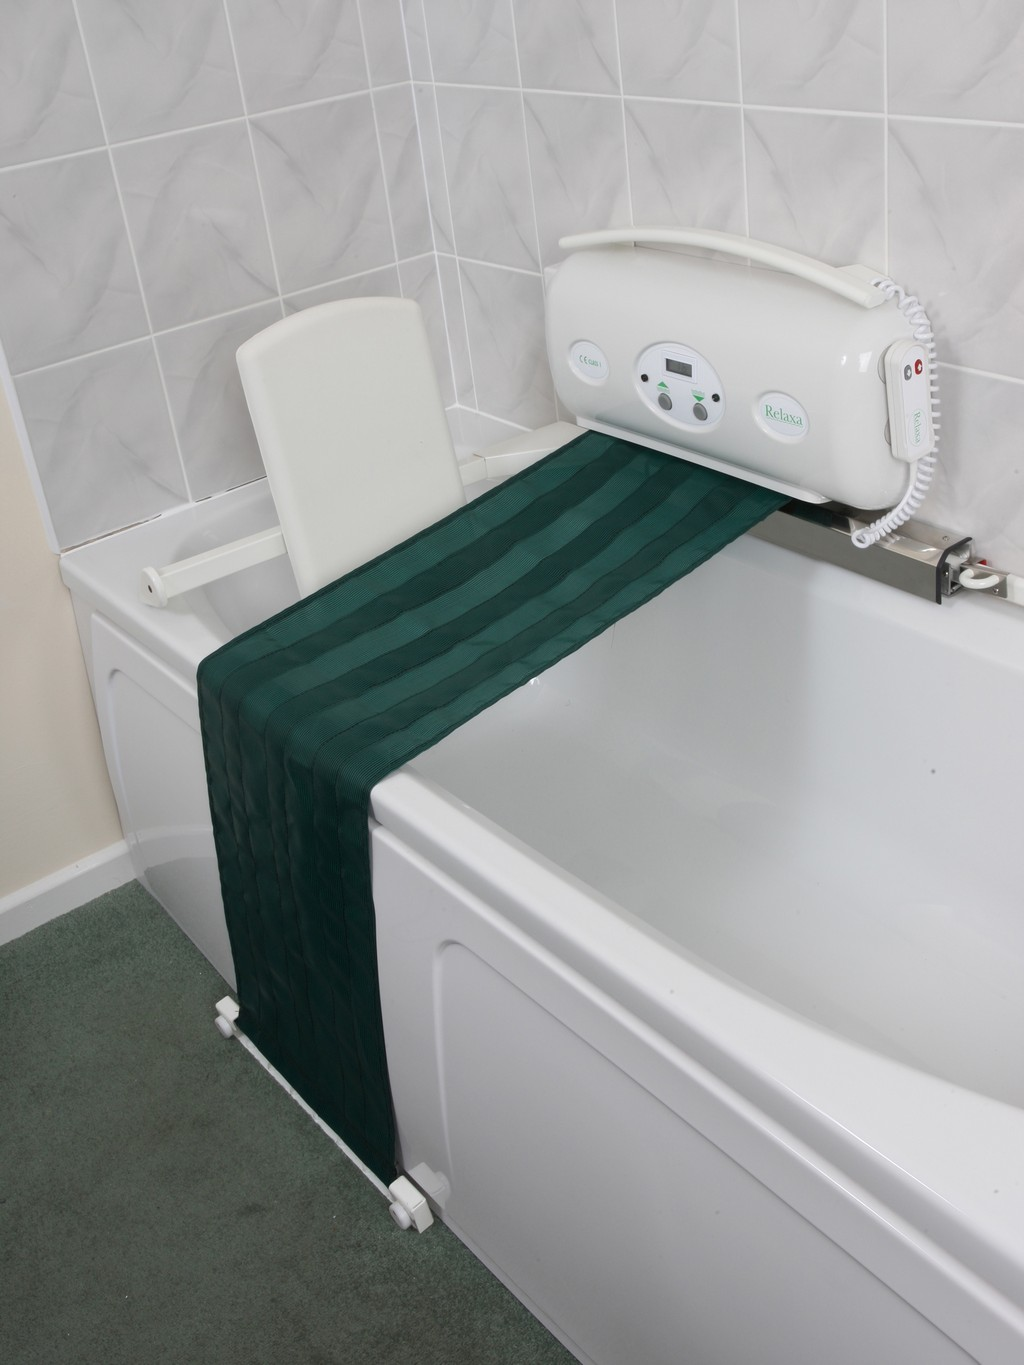 aqua bath lift, bath lifts, auqa bath lift, bath tub lift